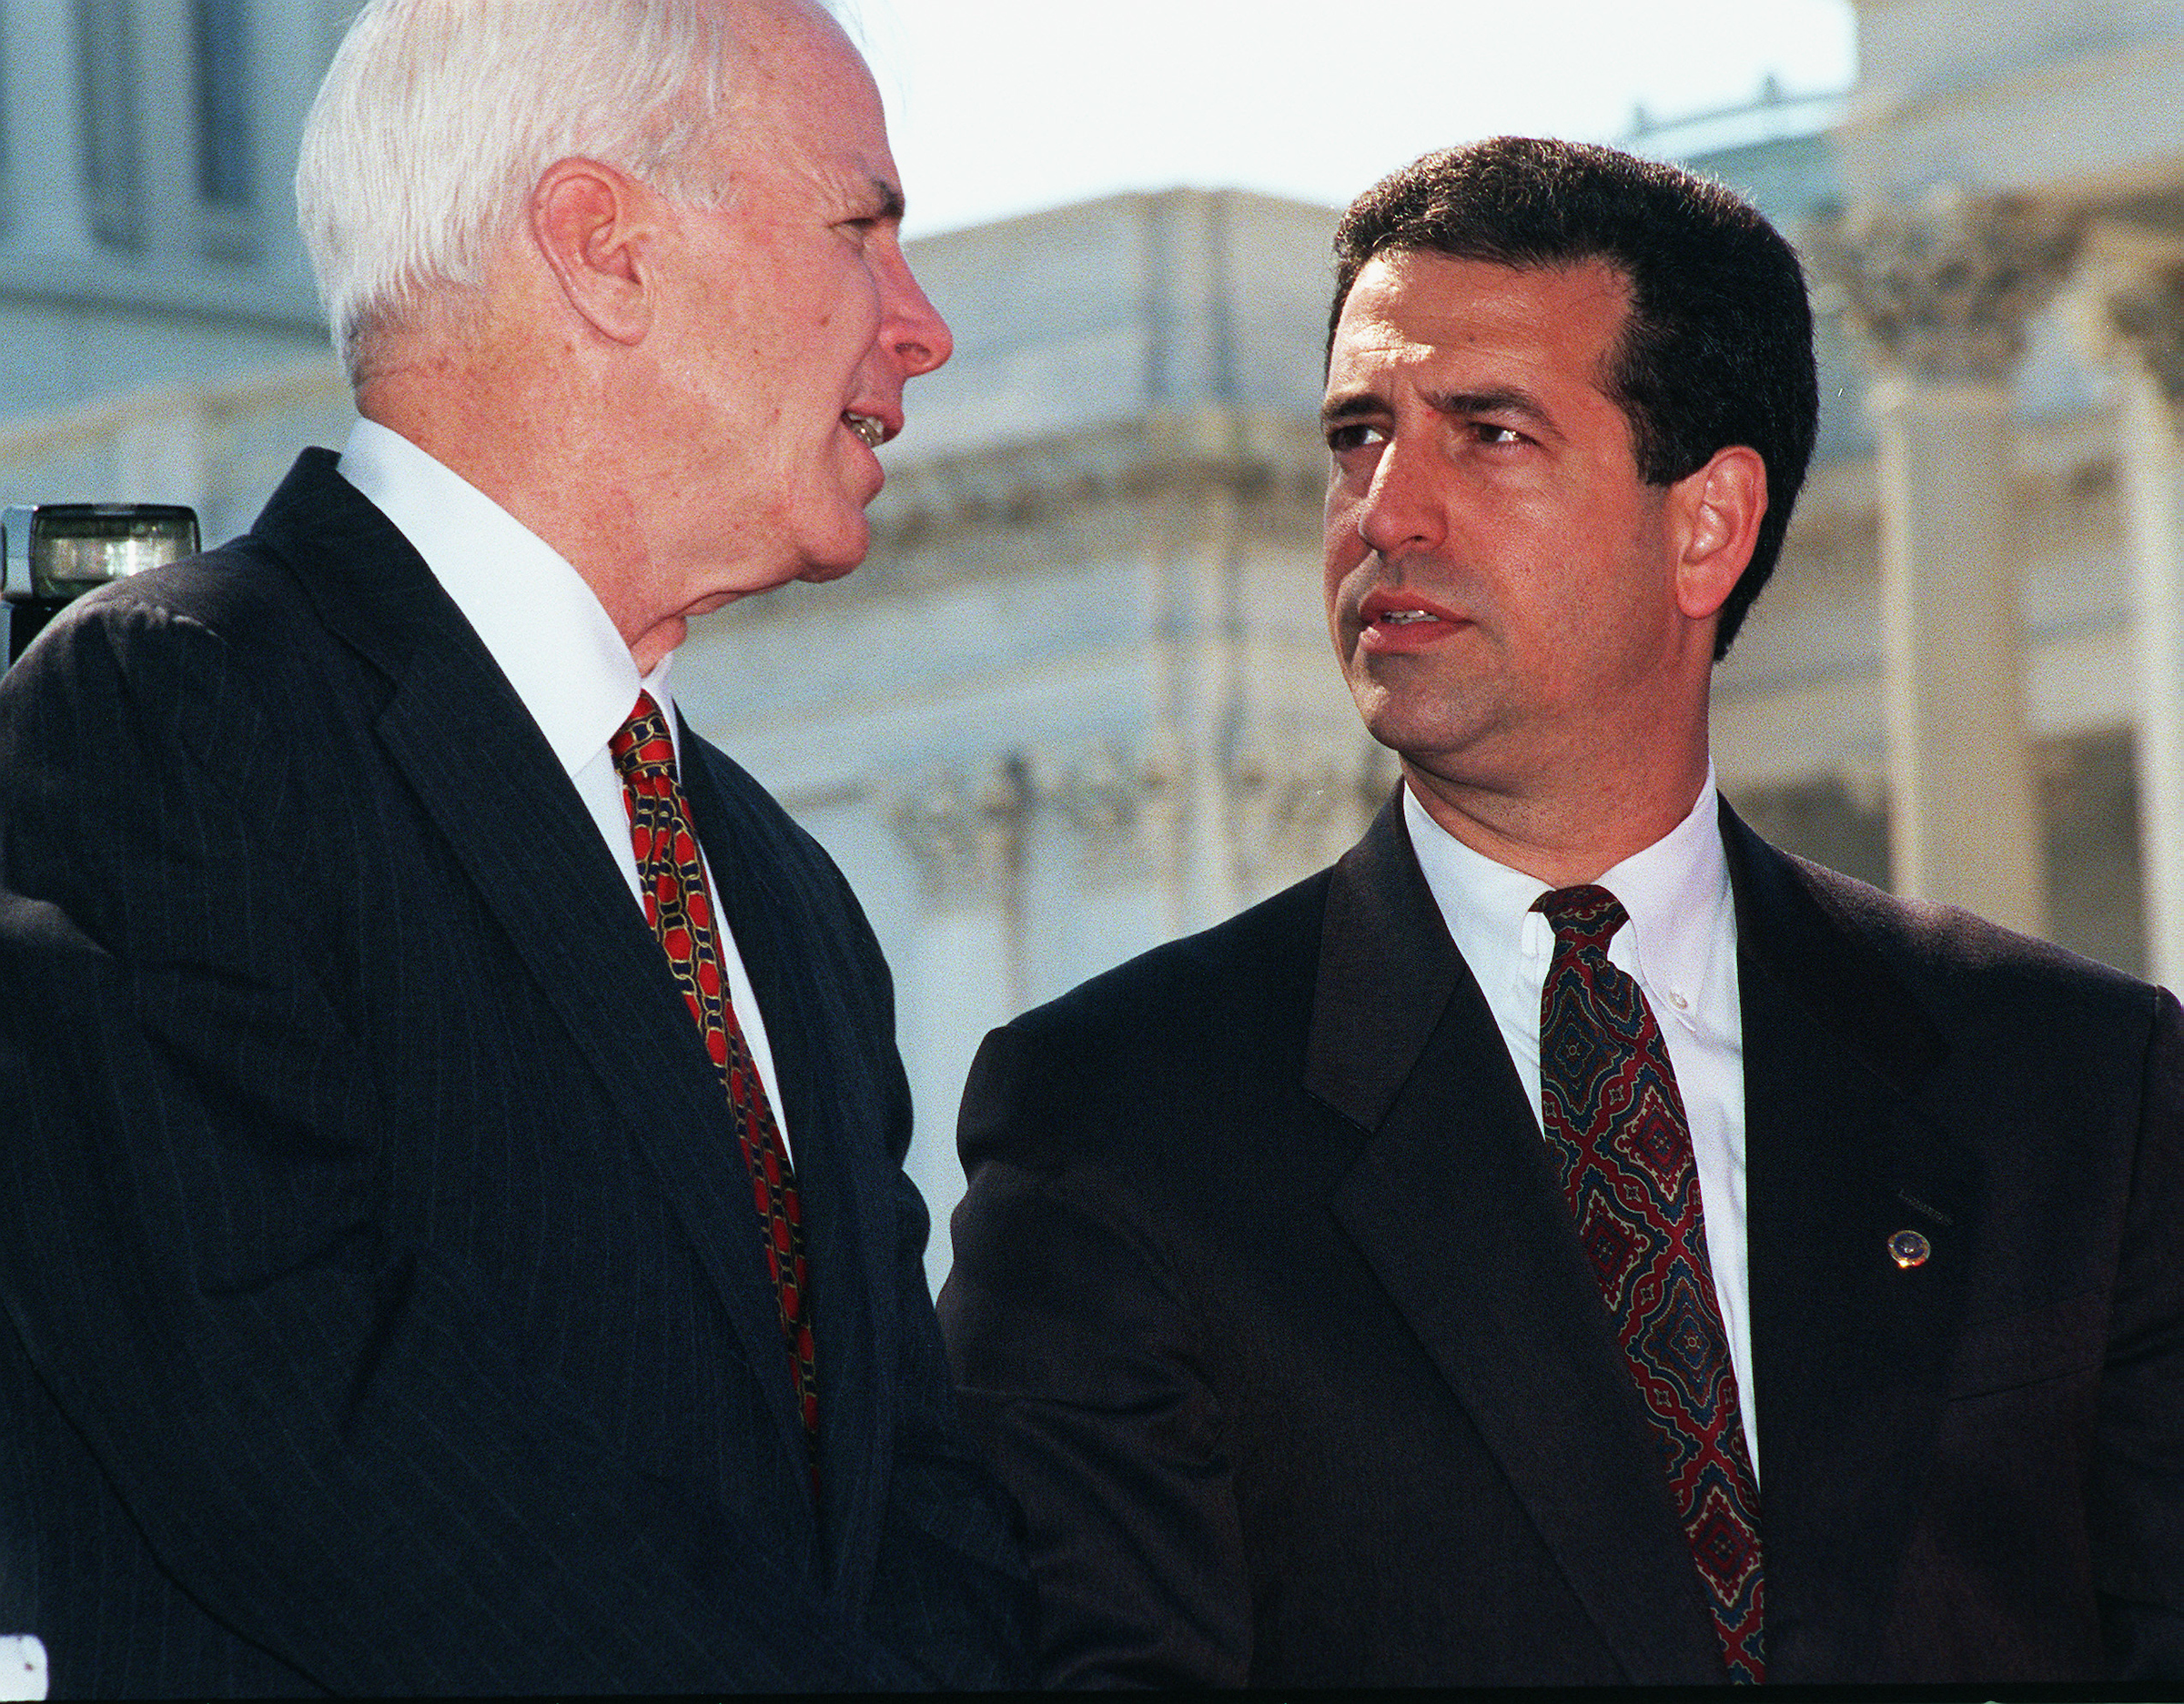 10-6-97.CAMPAIGN FINANCE PRESS CONFERENCE-- John McCain ,R-Ariz.,and Russell D. Feingold,D-Wis., during a press conference on campaign finance reform.One-million American names demanding that Congress clean up the corrupt campaign finance system was delivered by Common Cause at the event..CONGRESSIONAL QUARTERLY PHOTO BY DOUGLAS GRAHAM